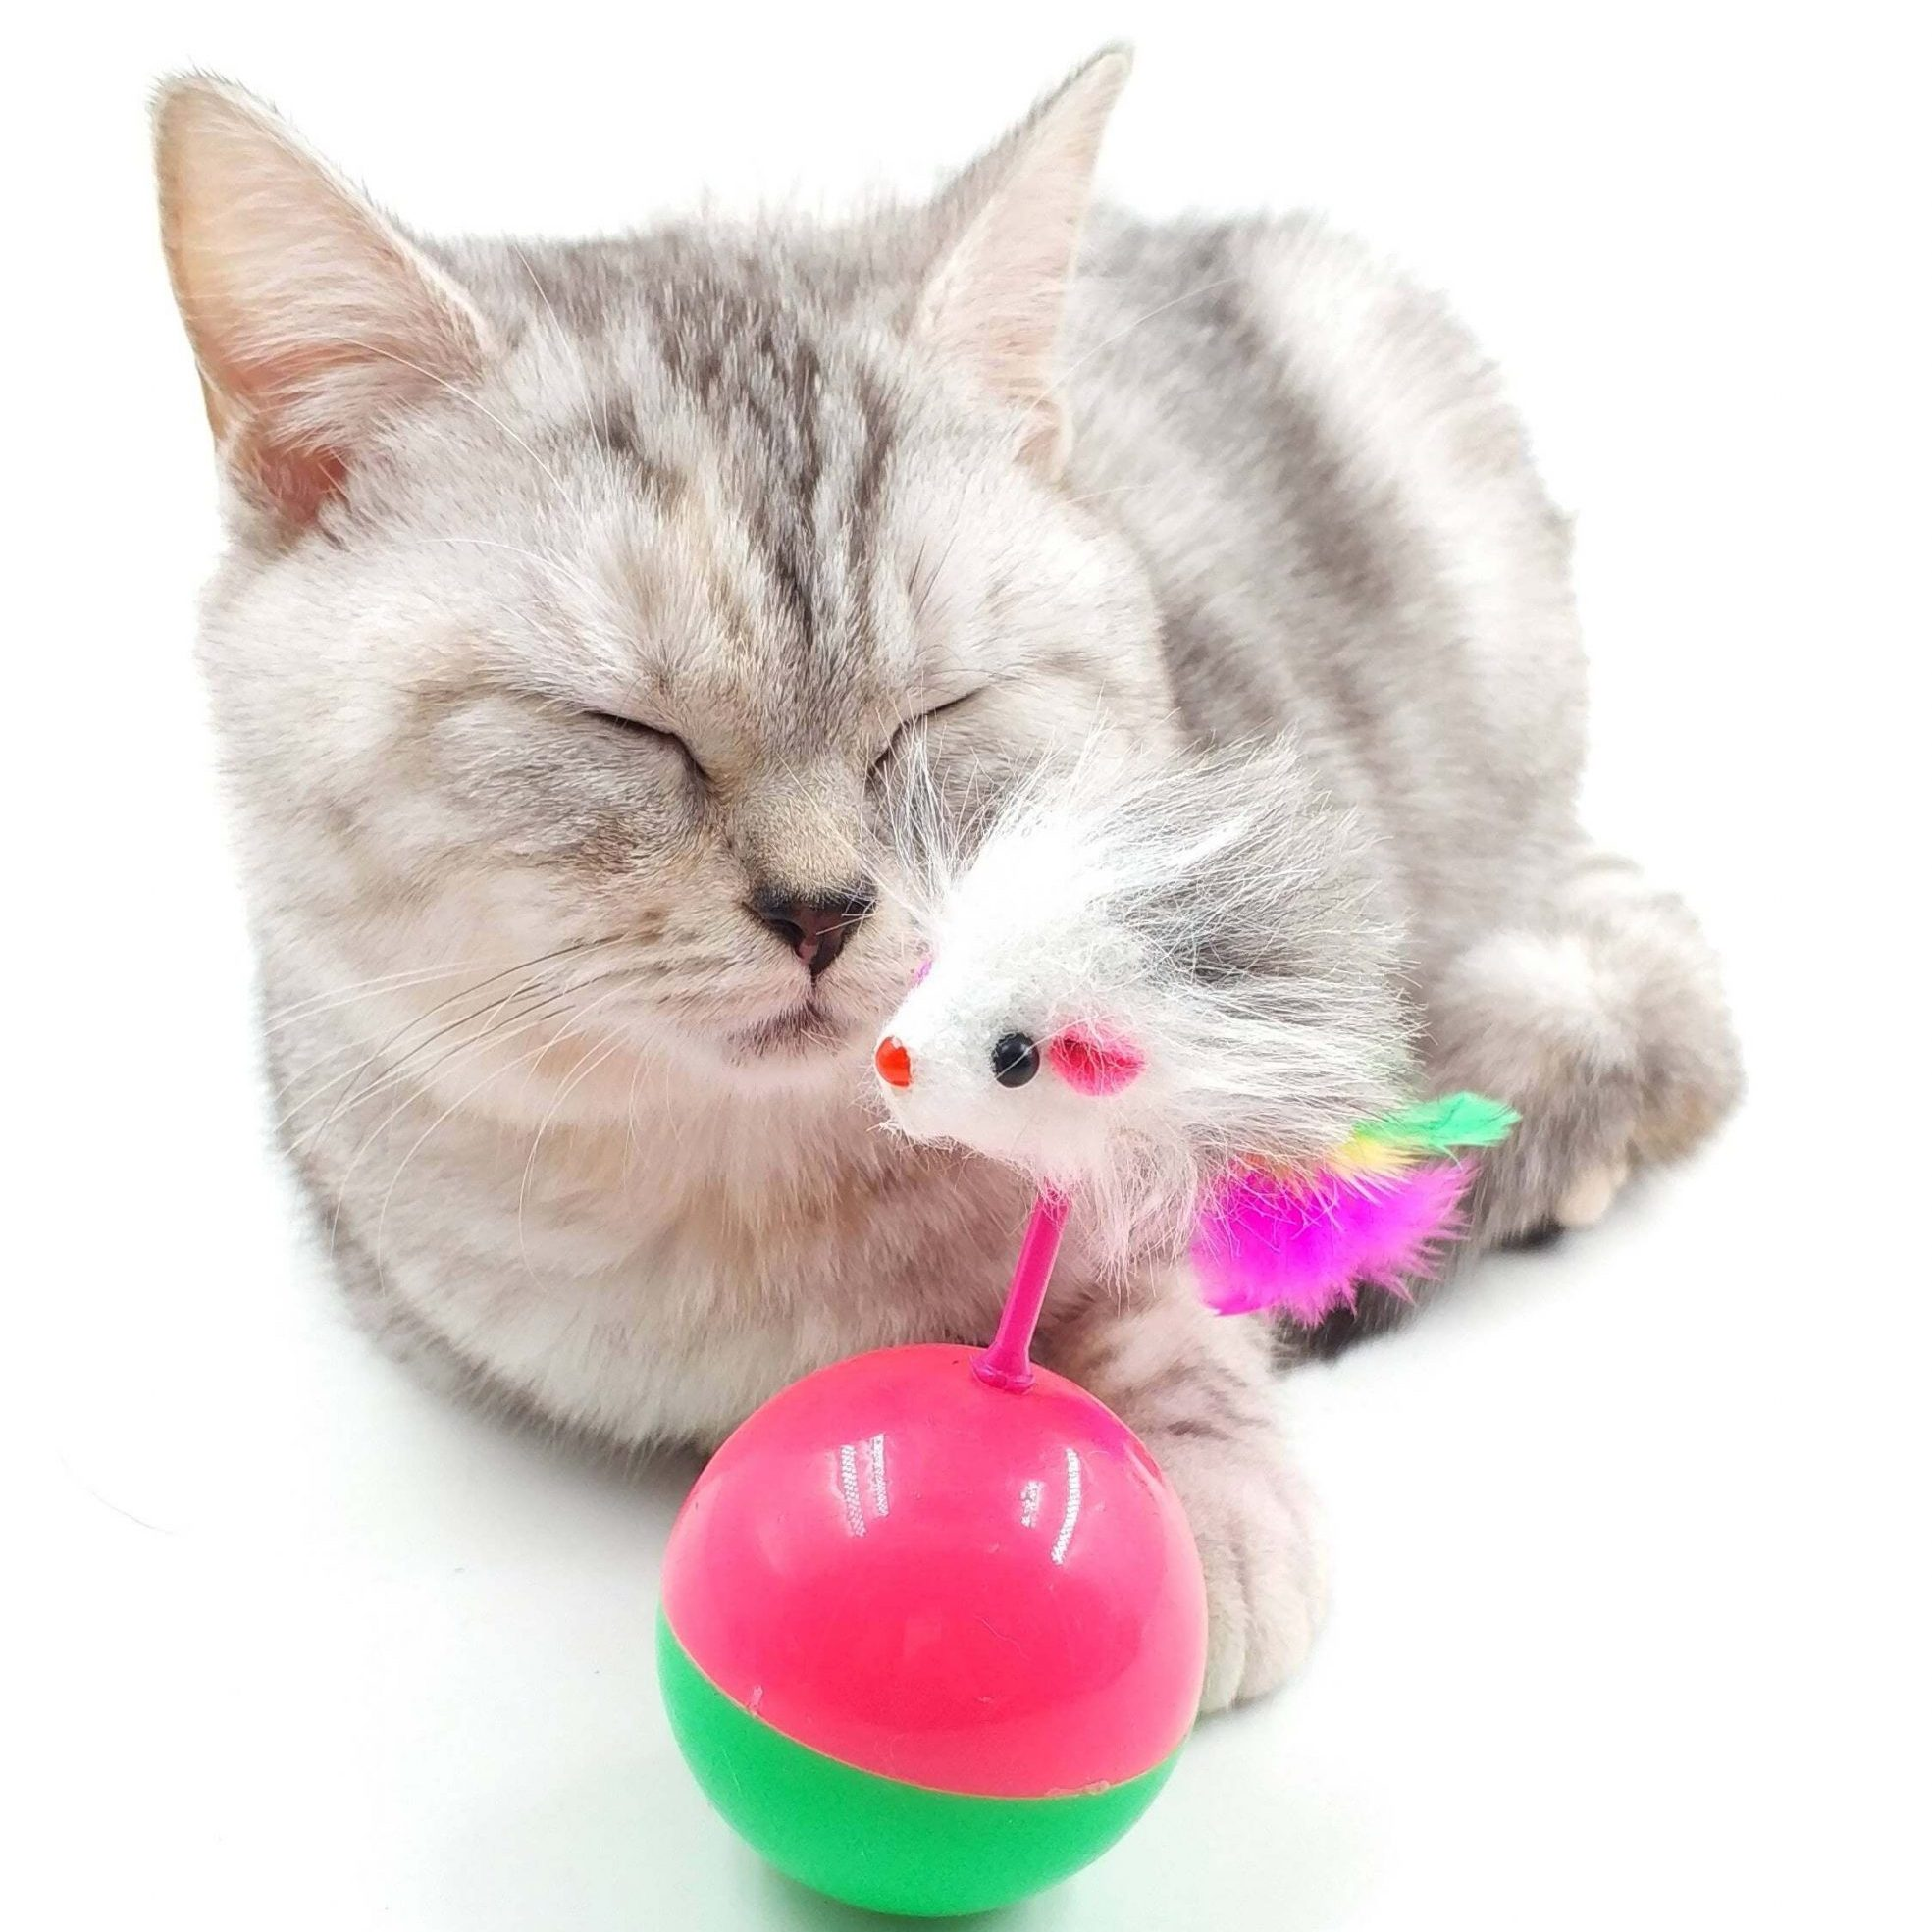 The Top 5 Most Unique Cat Toys on the Market (and Why You Need Them) - Cats Will Play